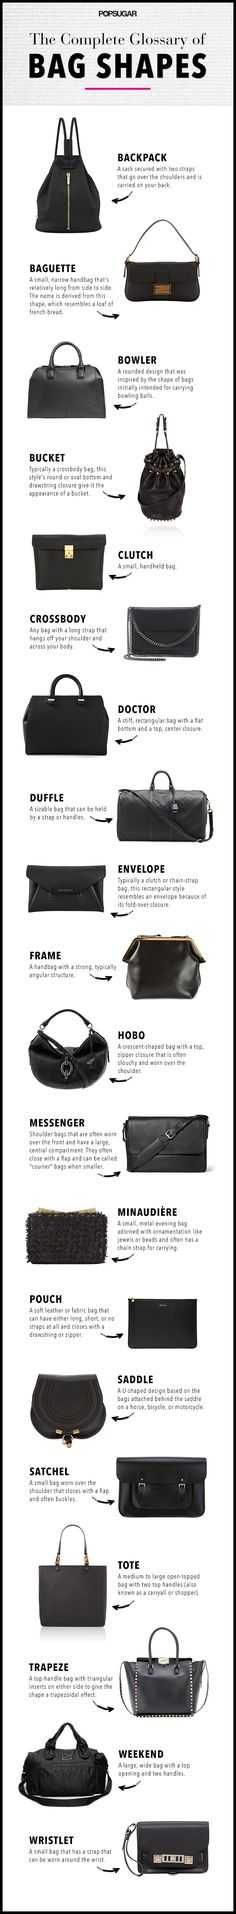 This bag glossary will guide you to the chicest shapes and styles. Which are your favorite?